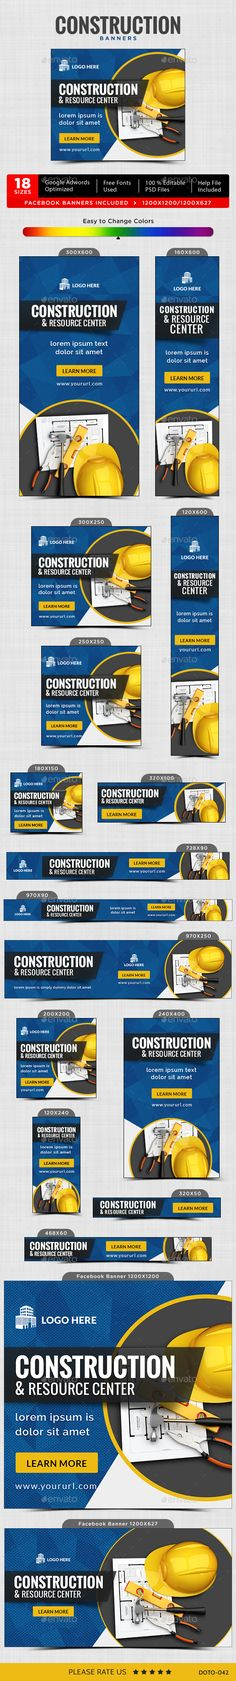 Construction Banners - Image Included by doto Promote your Products and services with this great looking Banner Set. Web Design, Layout Design, Creative Design, Flat Design, Graphic Design, Facebook Ad Size, Advertising Sales, Banner Images, Construction